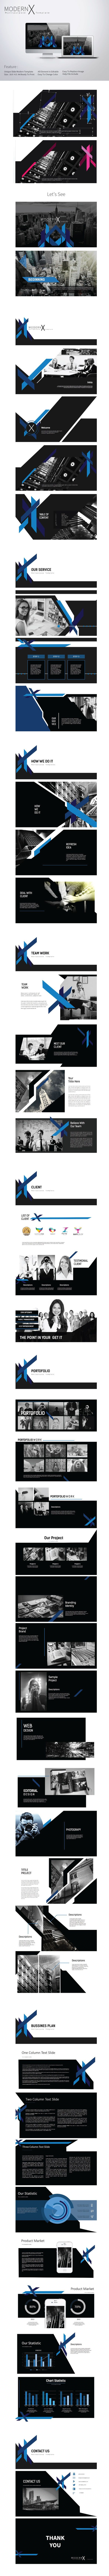 9 best plantillas de diapositivas images on pinterest ppt x modern powerpoint template toneelgroepblik Gallery